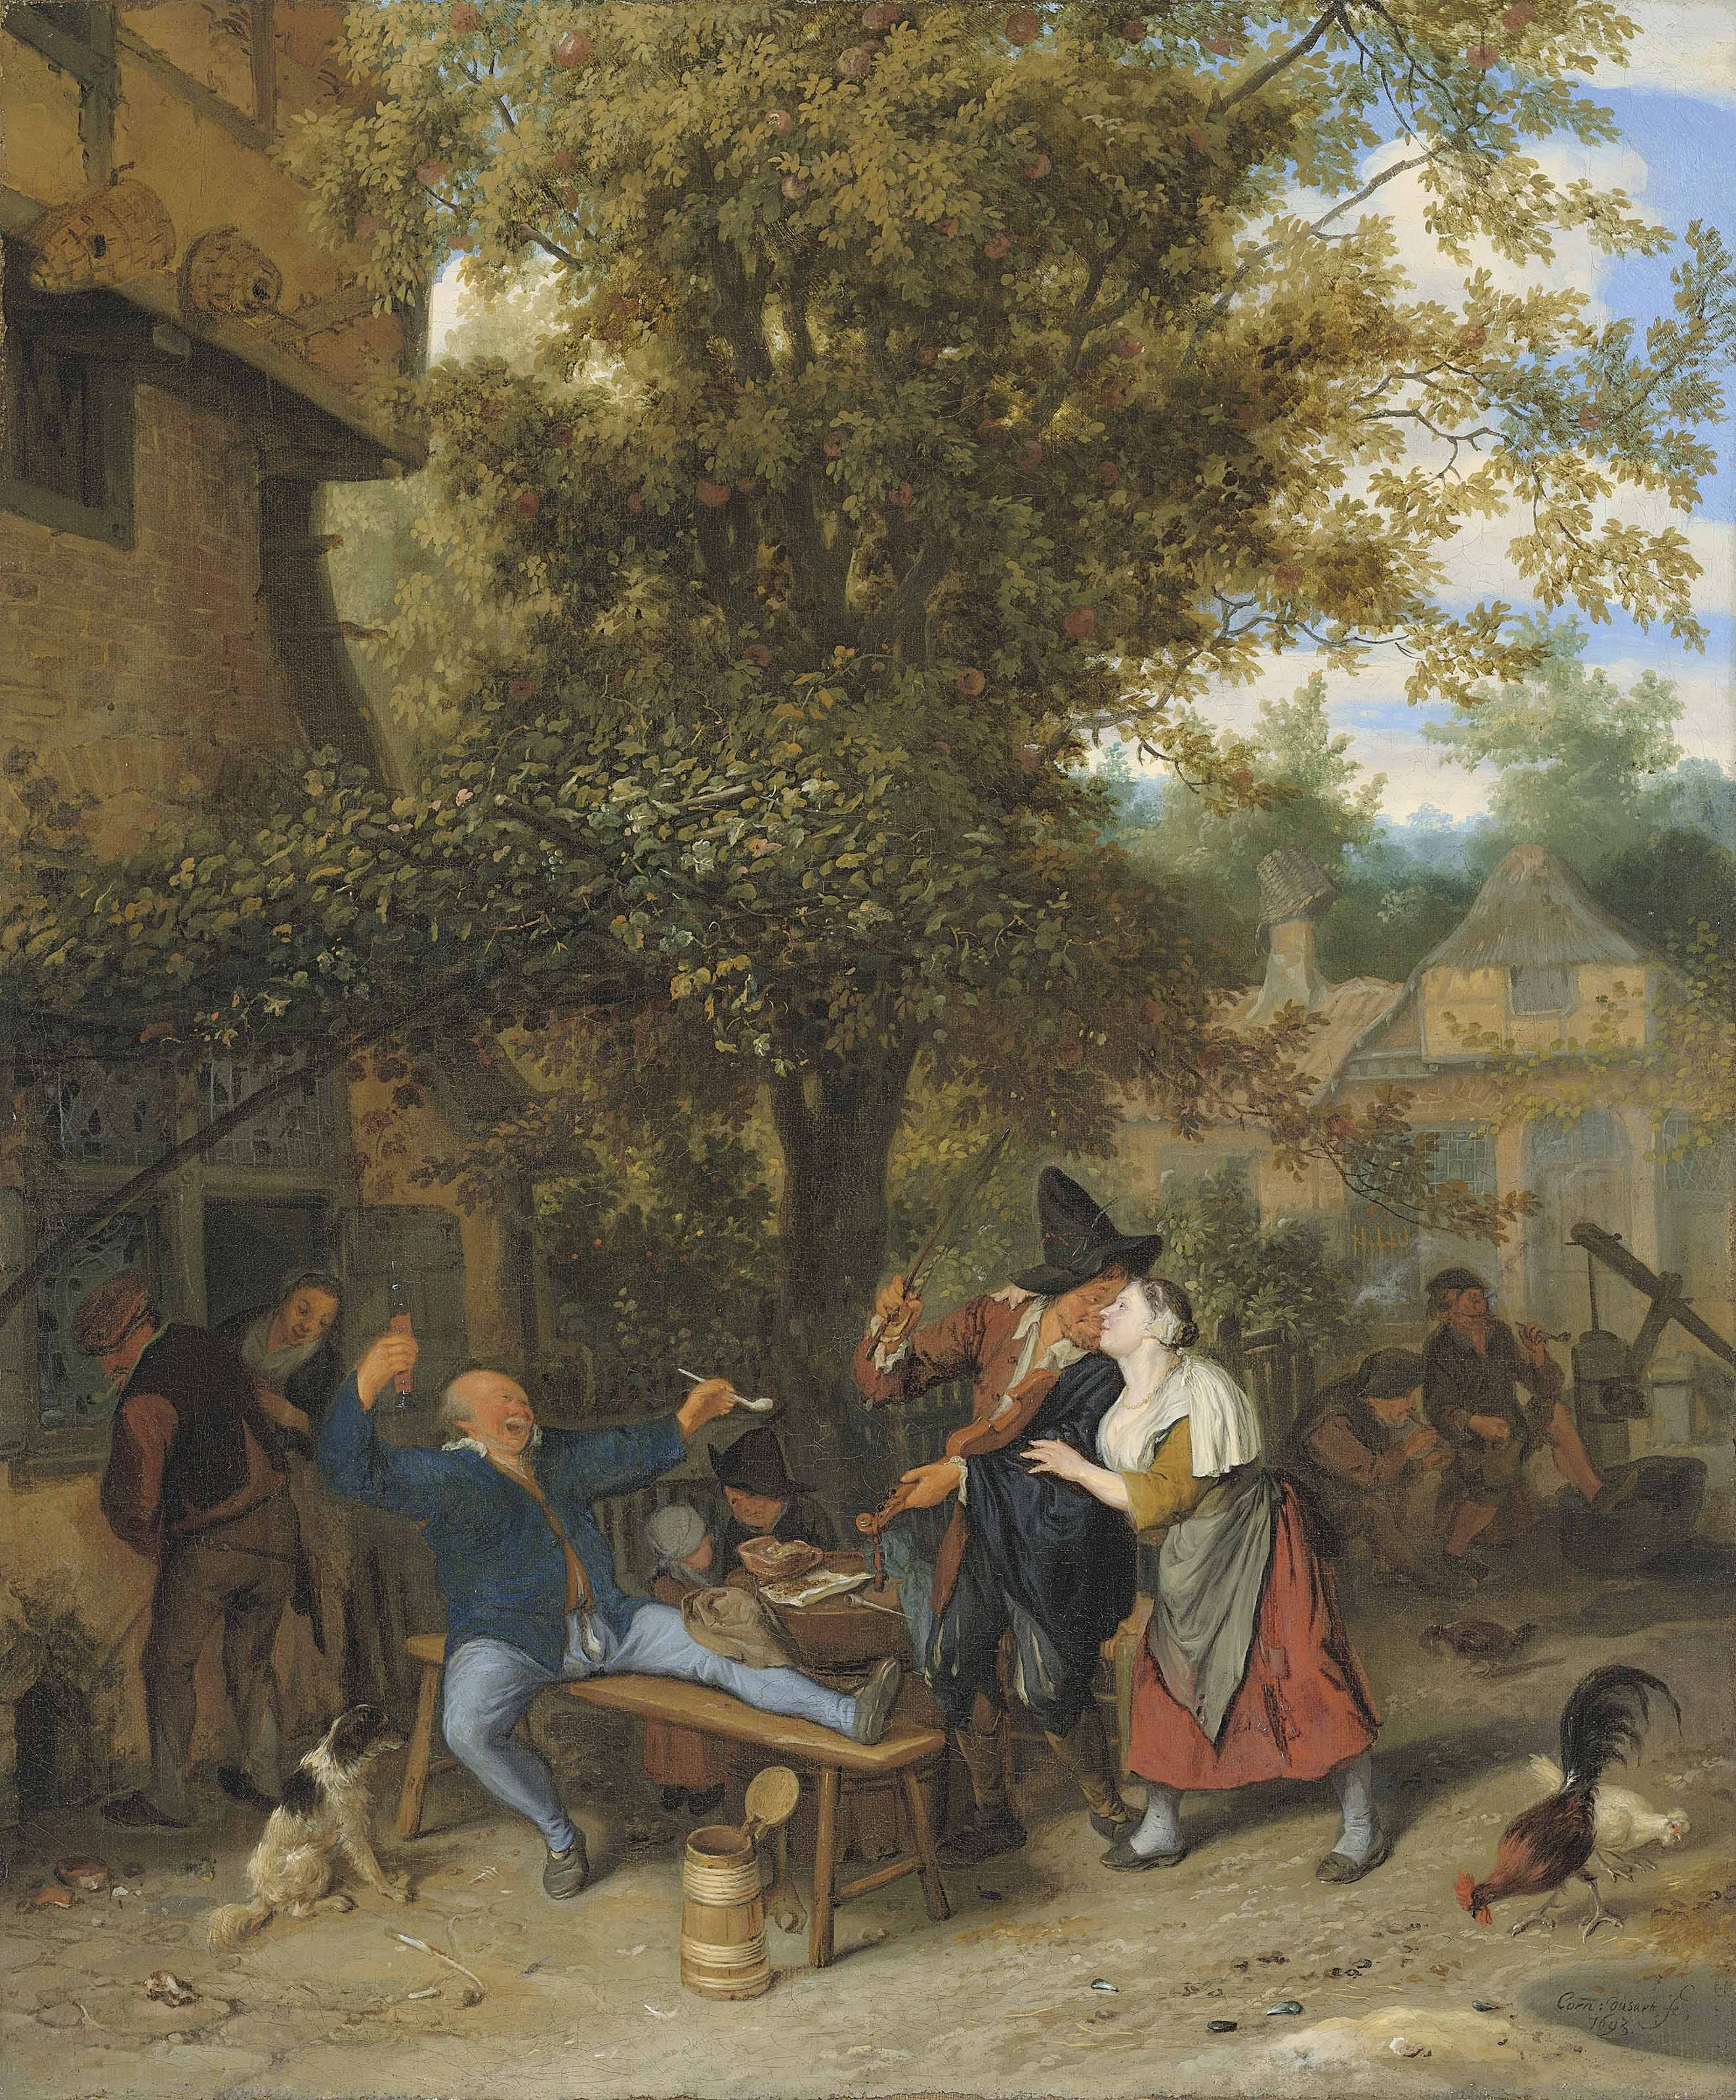 A fiddler and peasants drinking and carousing outside a village inn